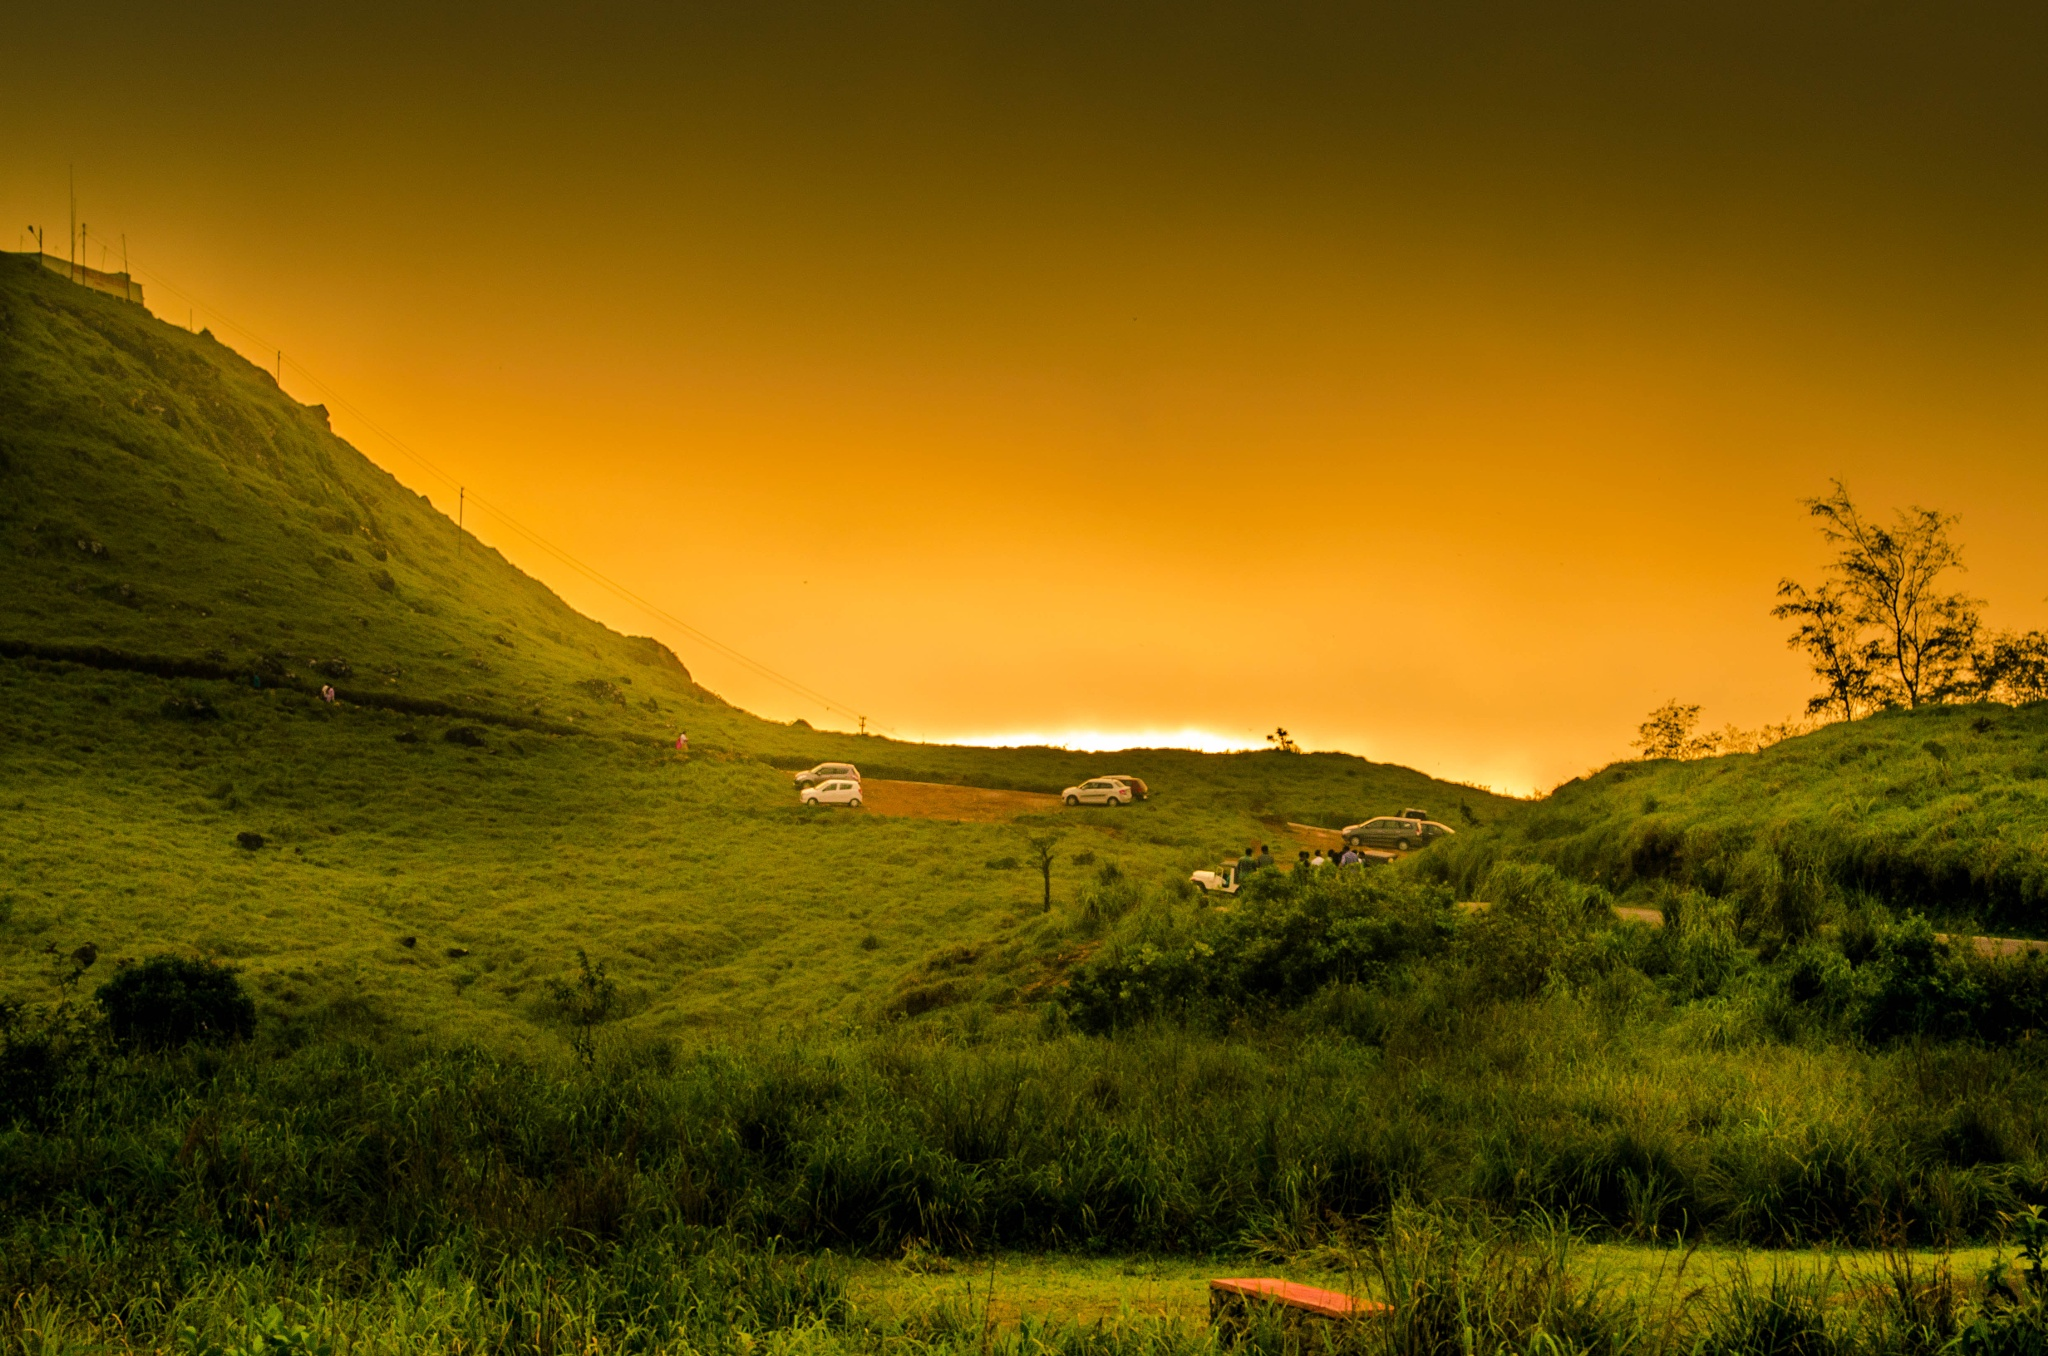 Enchanted Valleys by Syam M S